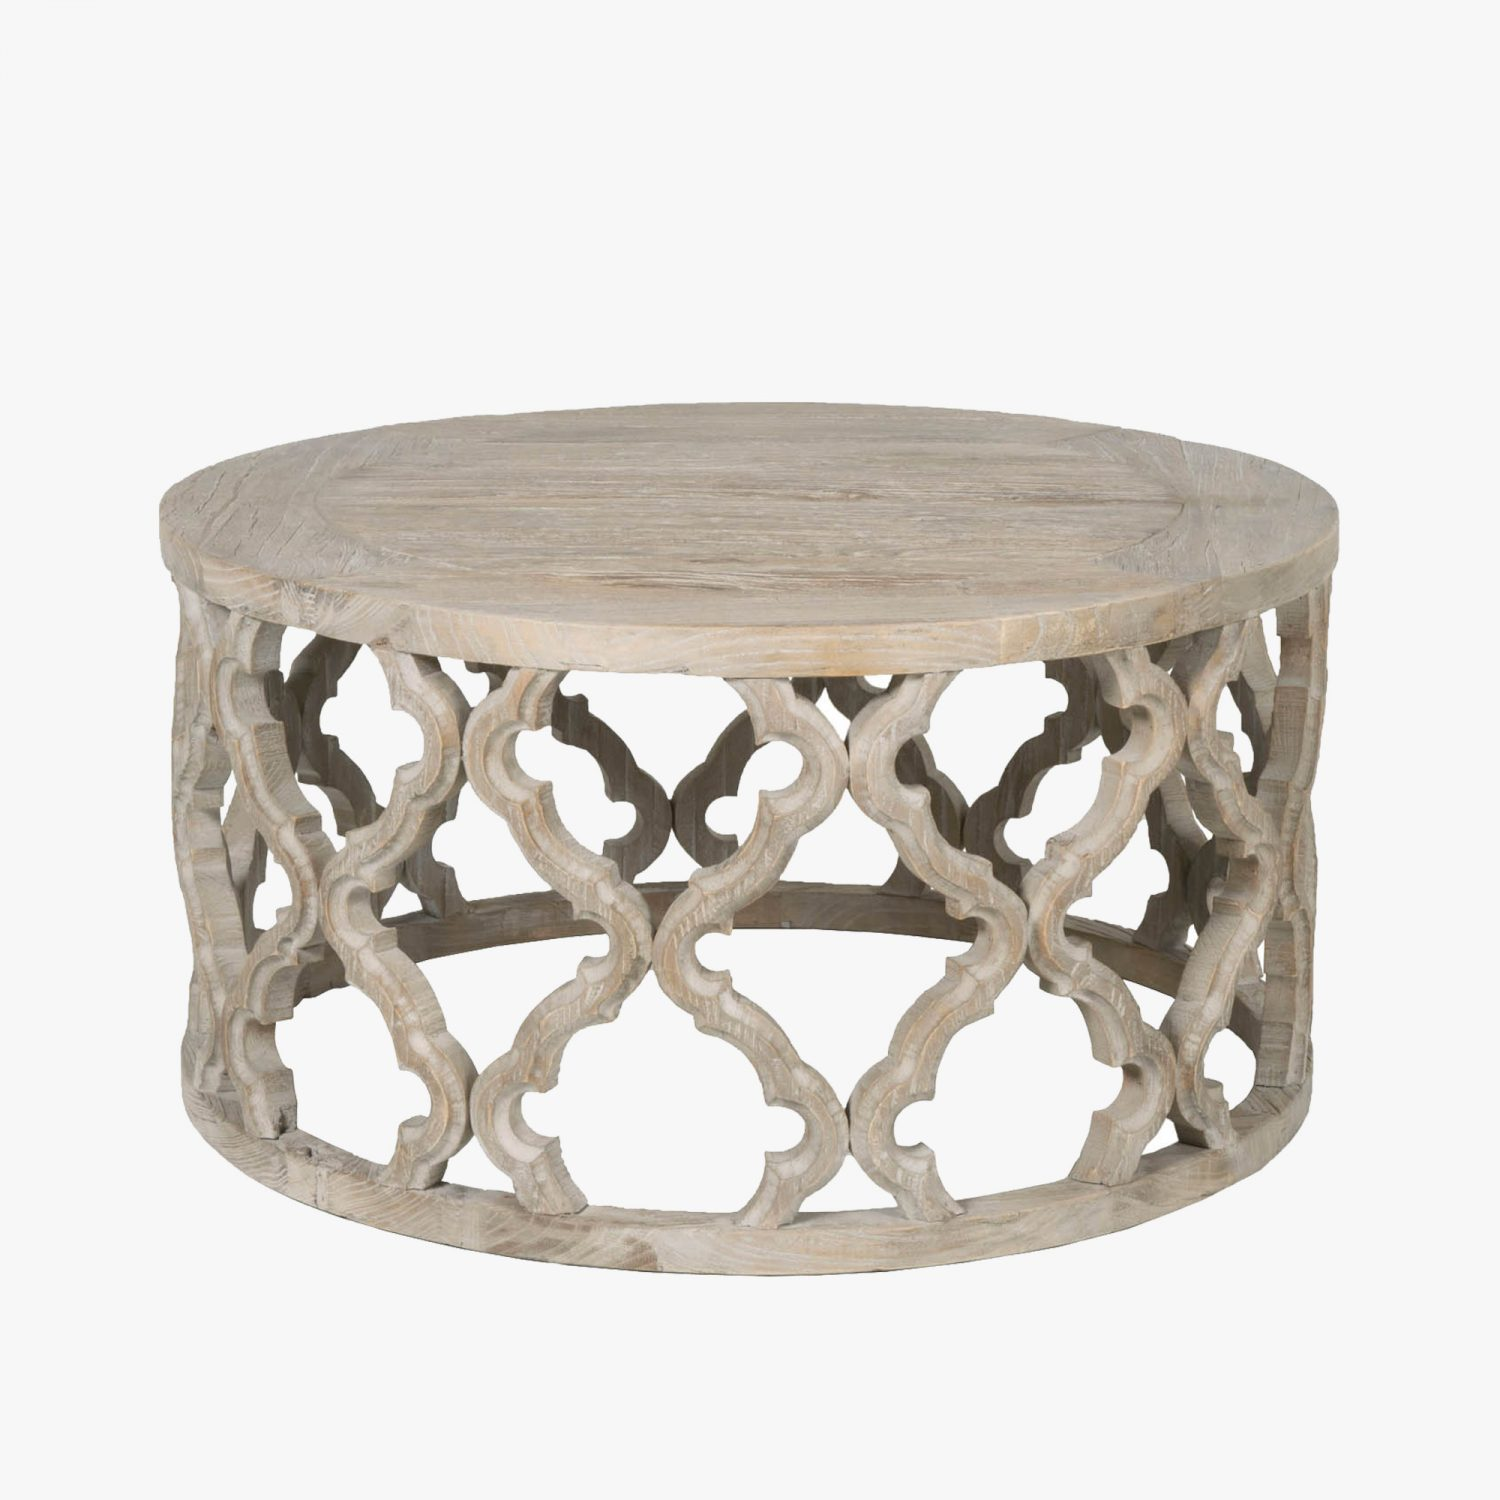 carved quatrefoil coffee table tables dear keaton accent small battery lamp ikea furniture chest for entryway short tall with drawer room inch round fitted vinyl tablecloth rubber